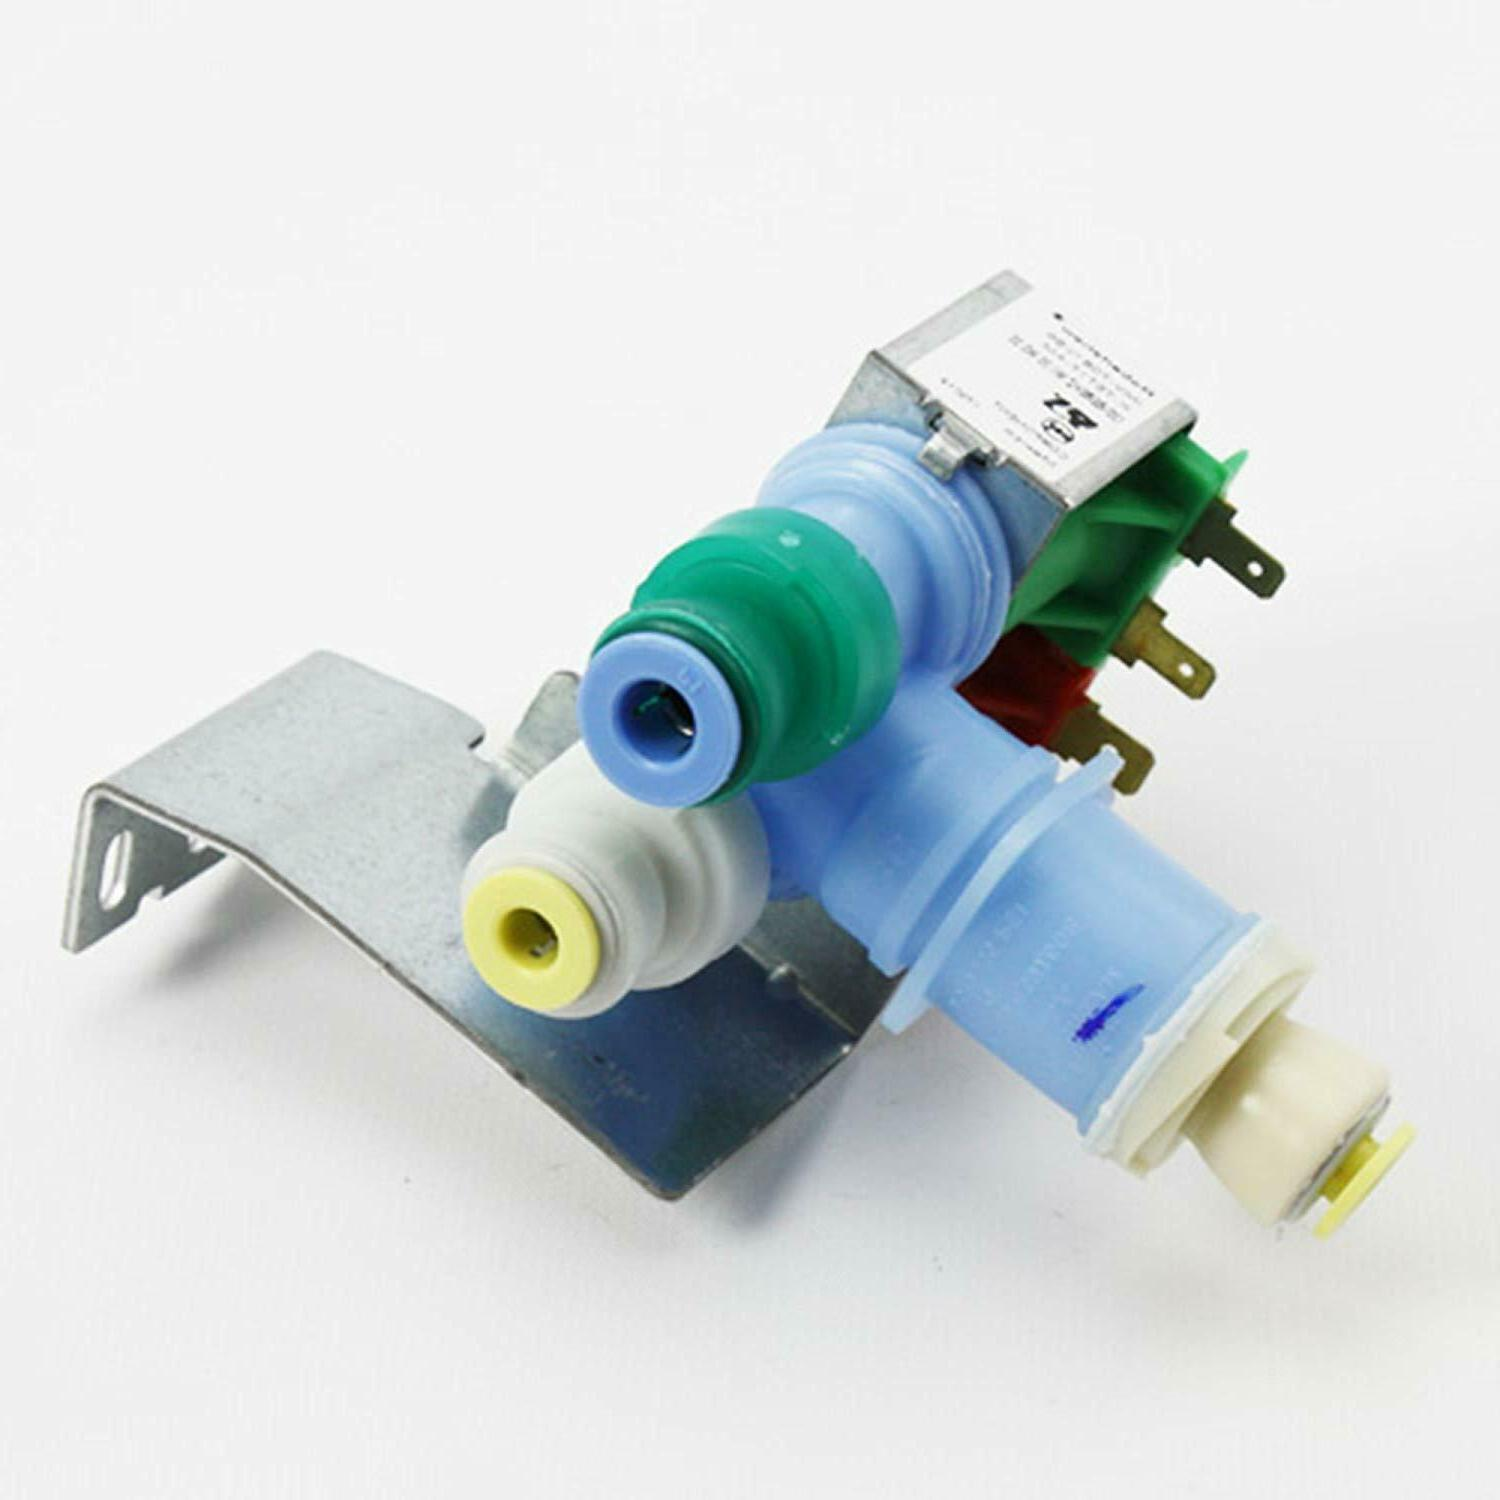 Refrigerator Ice Maker Inlet Valve For Whirlpool Kitchenaid Kenmore Parts